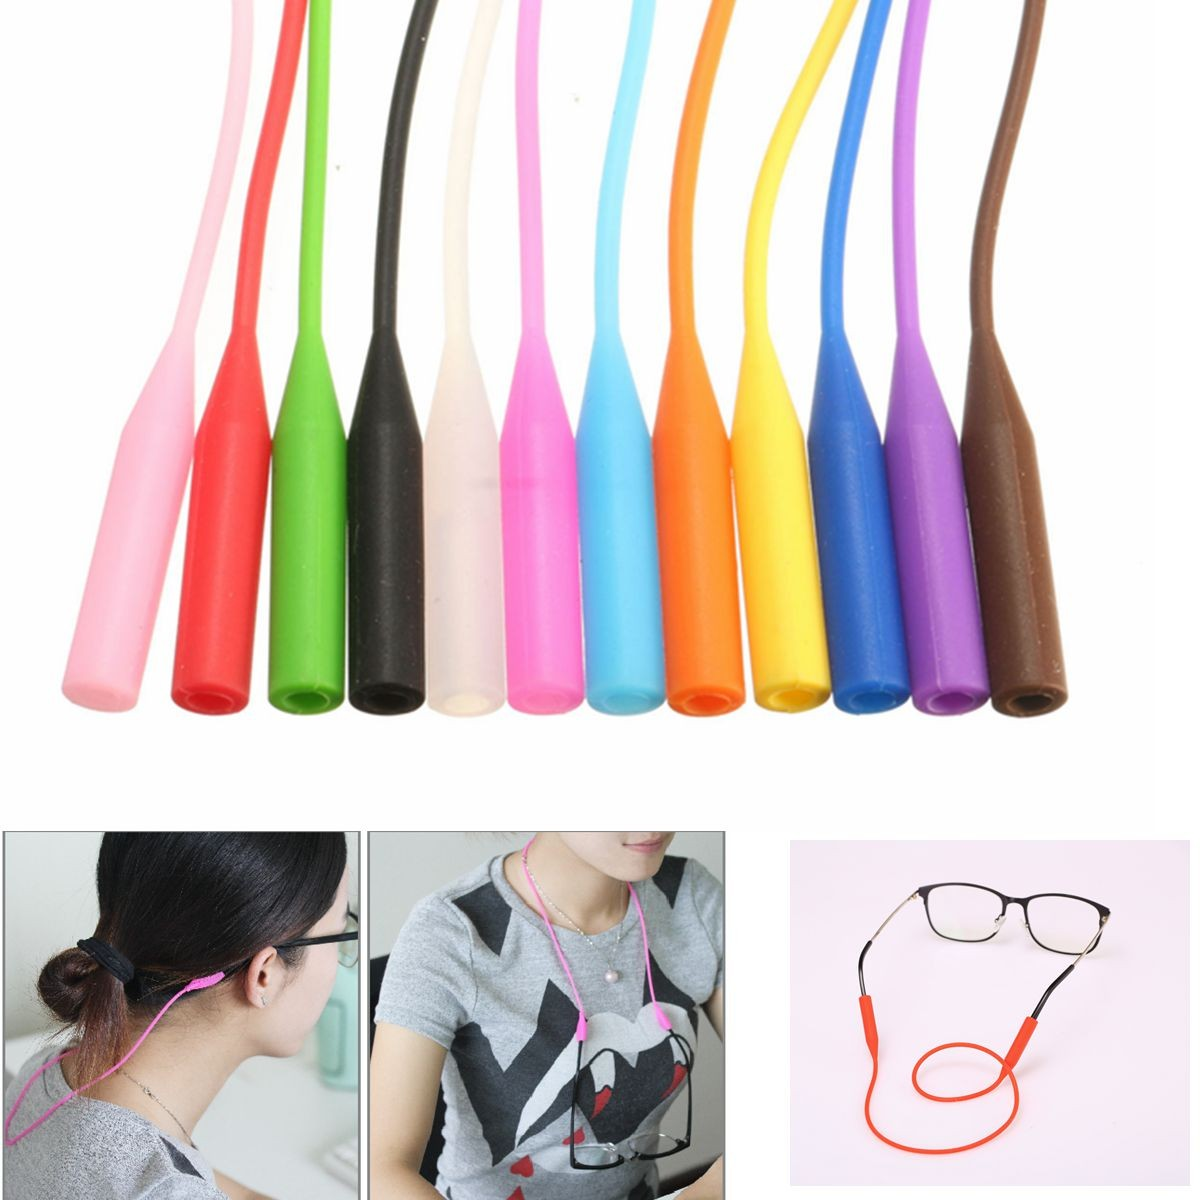 Glasses Sport Strap Band Cord Lanyard String Spectacle Holder Spectacles Sunglasses Eyewear Pure Silicone Colorful